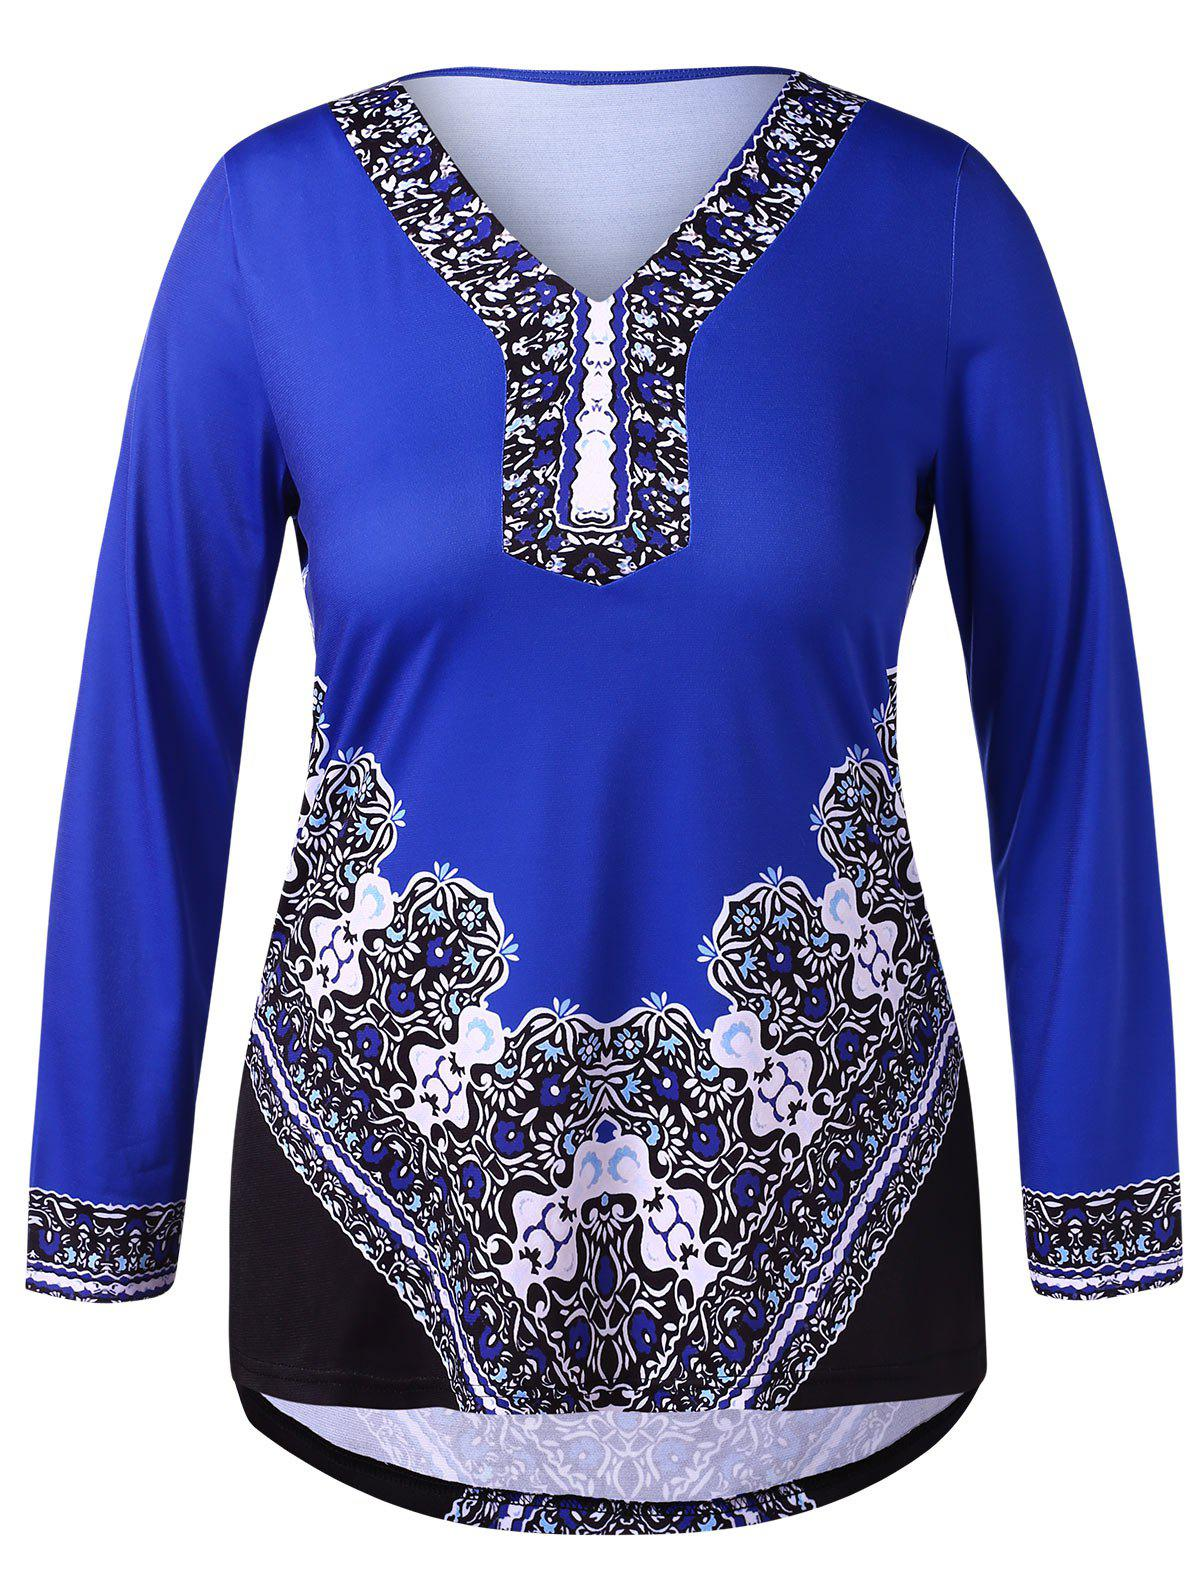 Plus Size Tribal Print High Low T-shirt - BLUE 4X